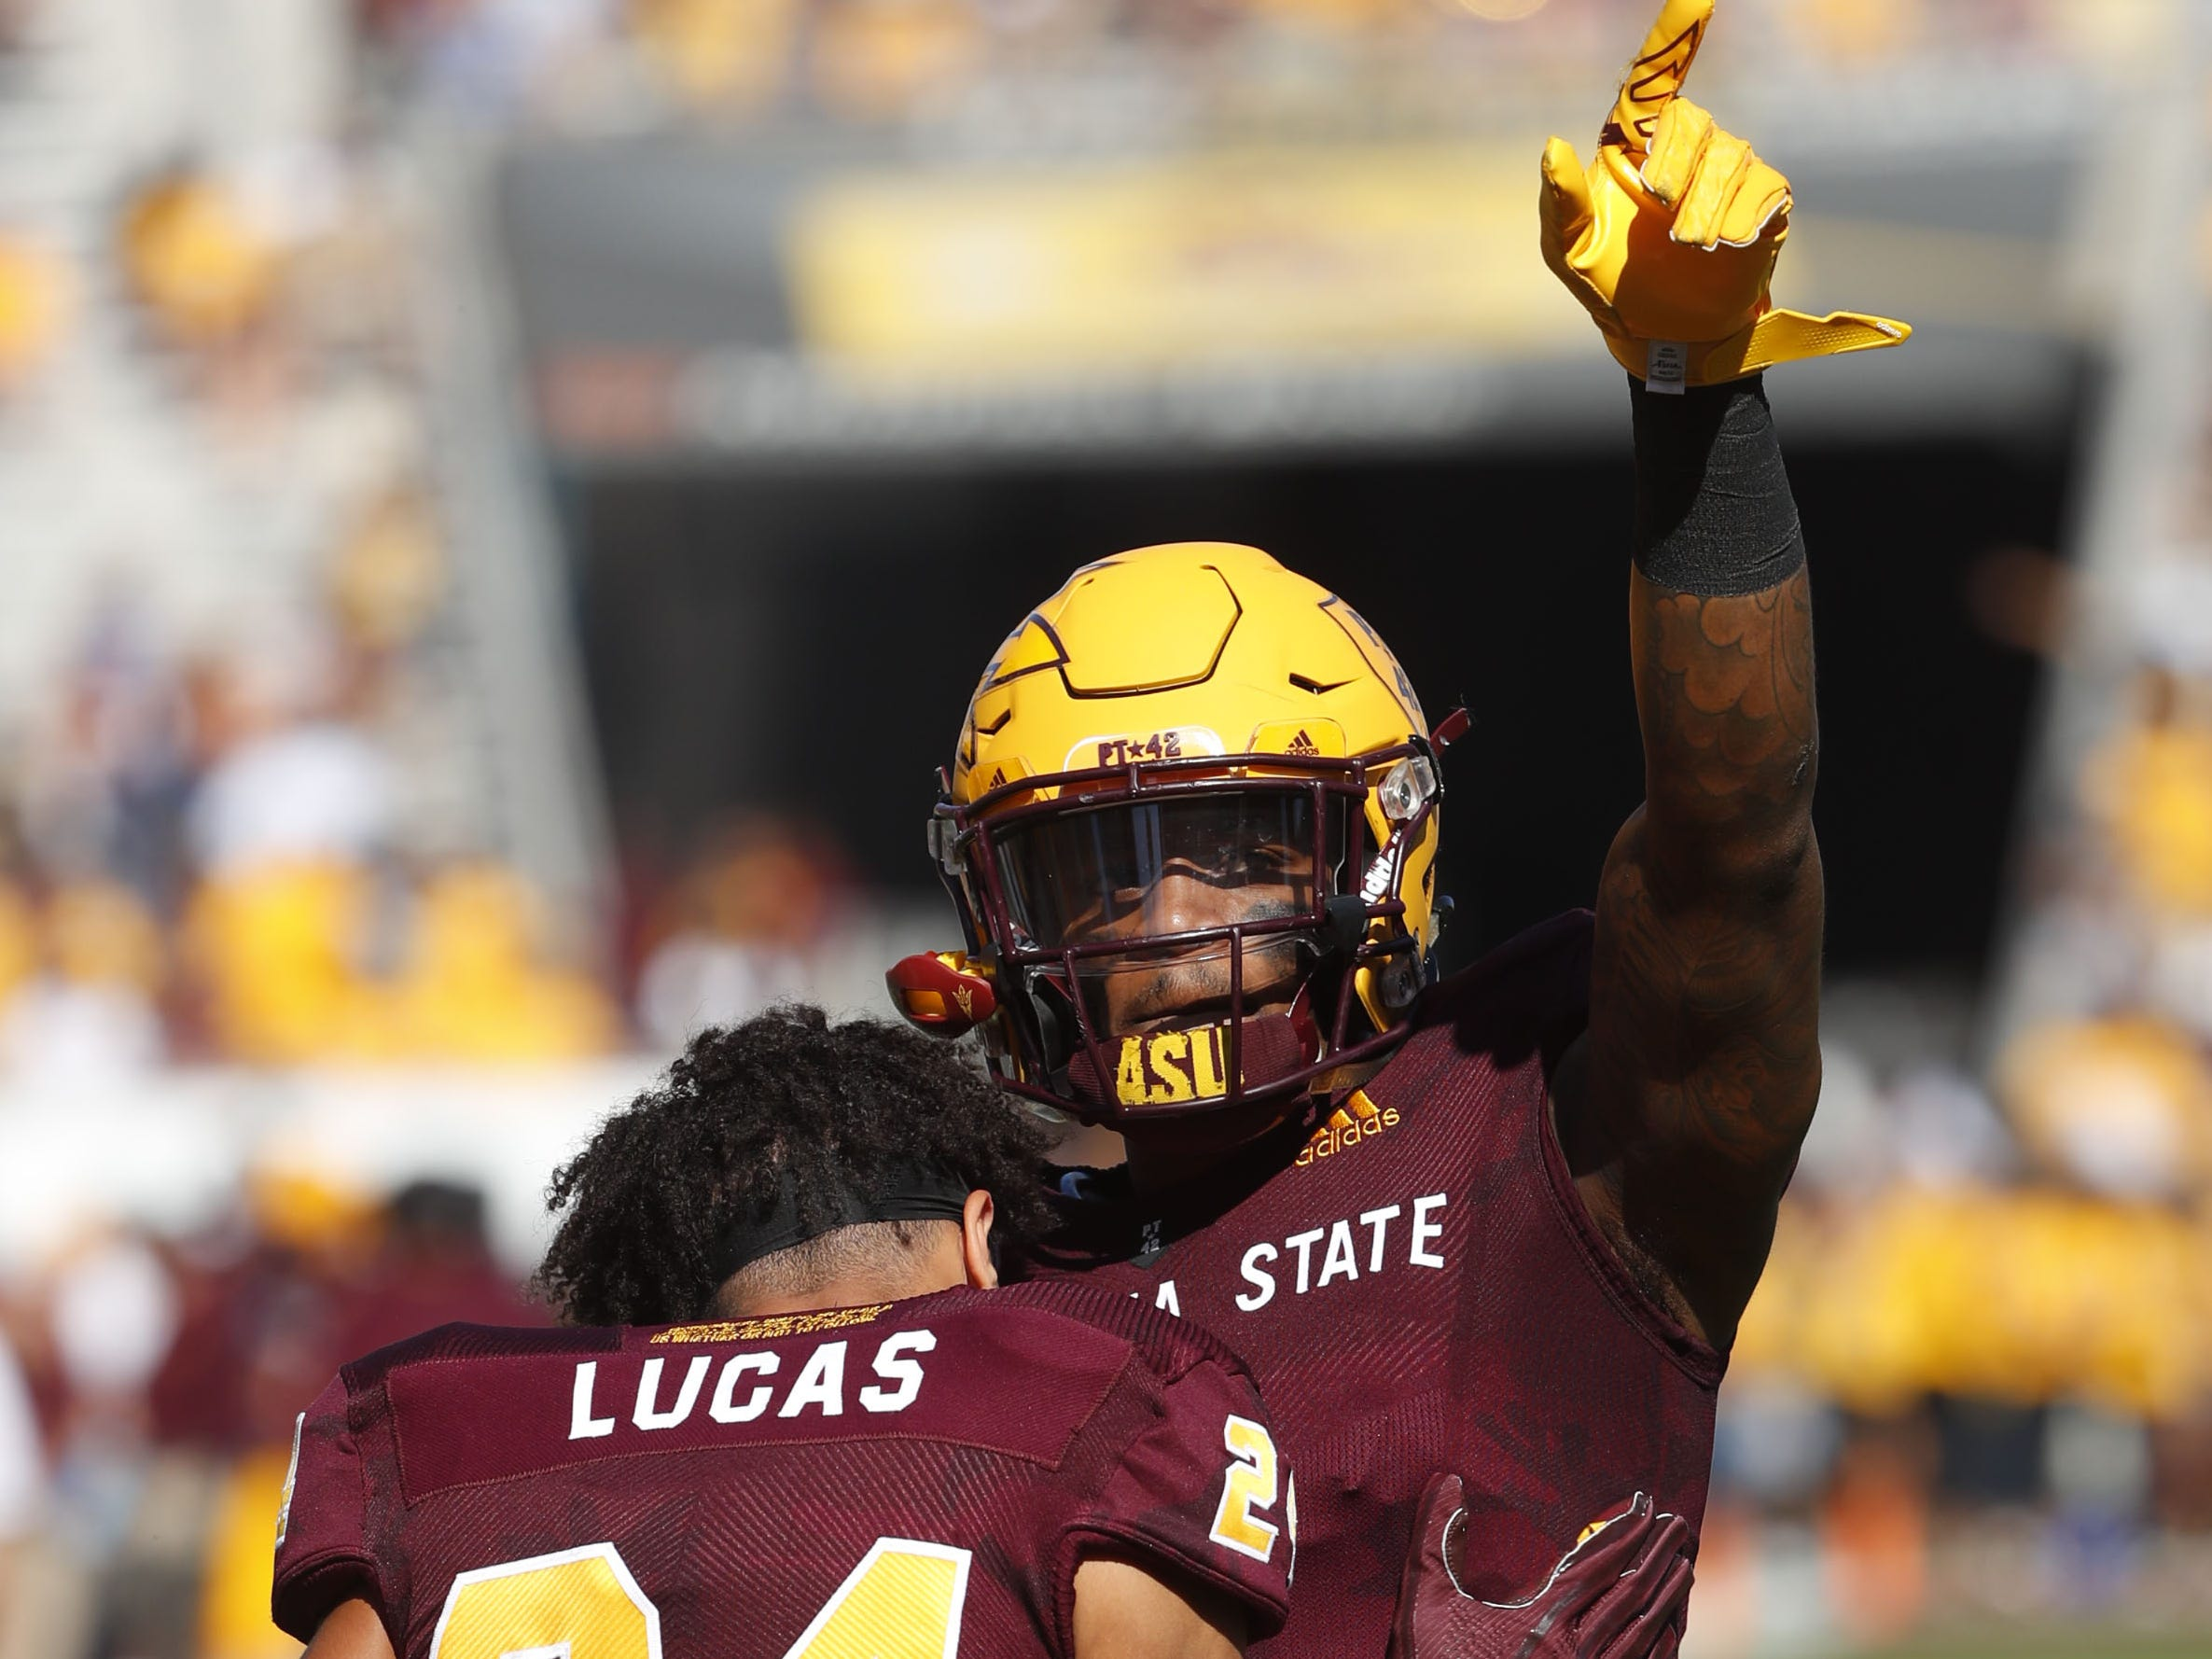 ASU's N'Keal Harry (1) points to the crowd as he is embraced by Chase Lucas (24) before the last home game against UCLA at Sun Devil Stadium in Tempe, Ariz. on November 10, 2018.